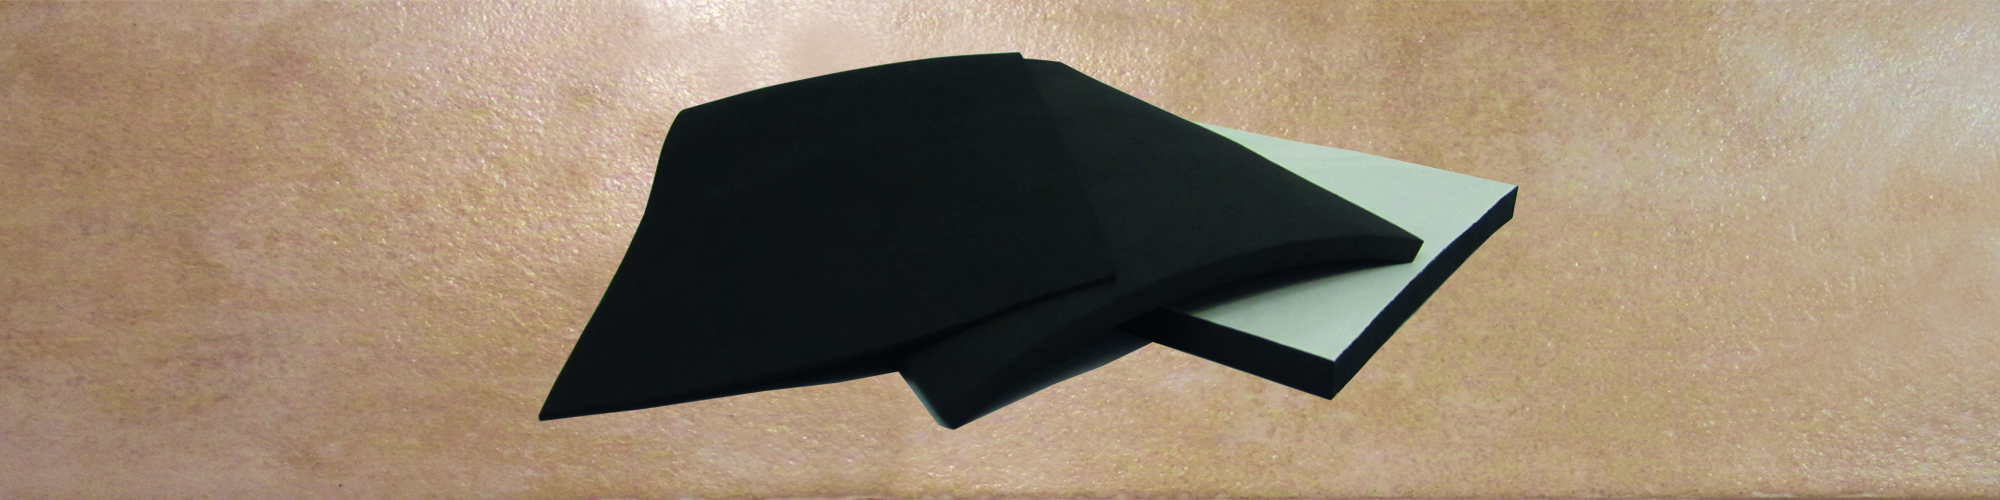 caoutchous cellulares neoprene polymere edpm